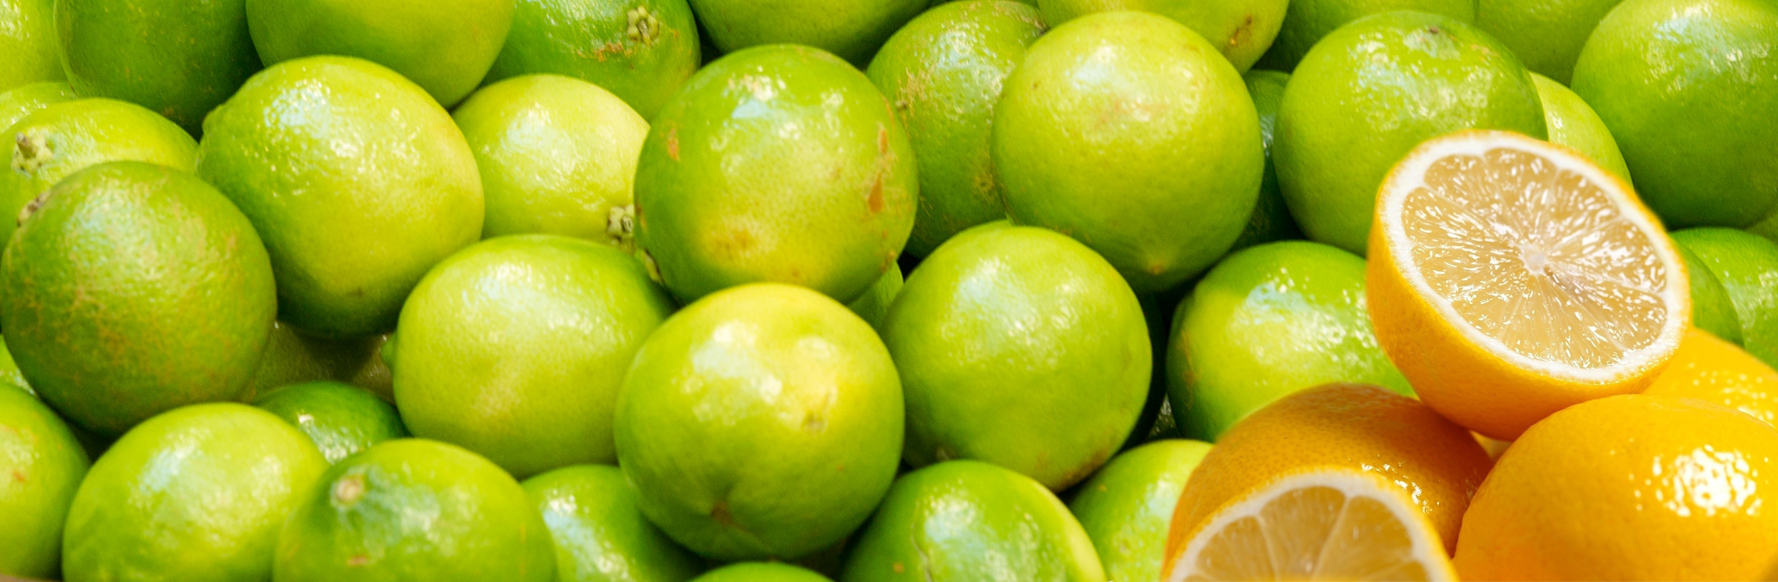 Lemons-and-Limes